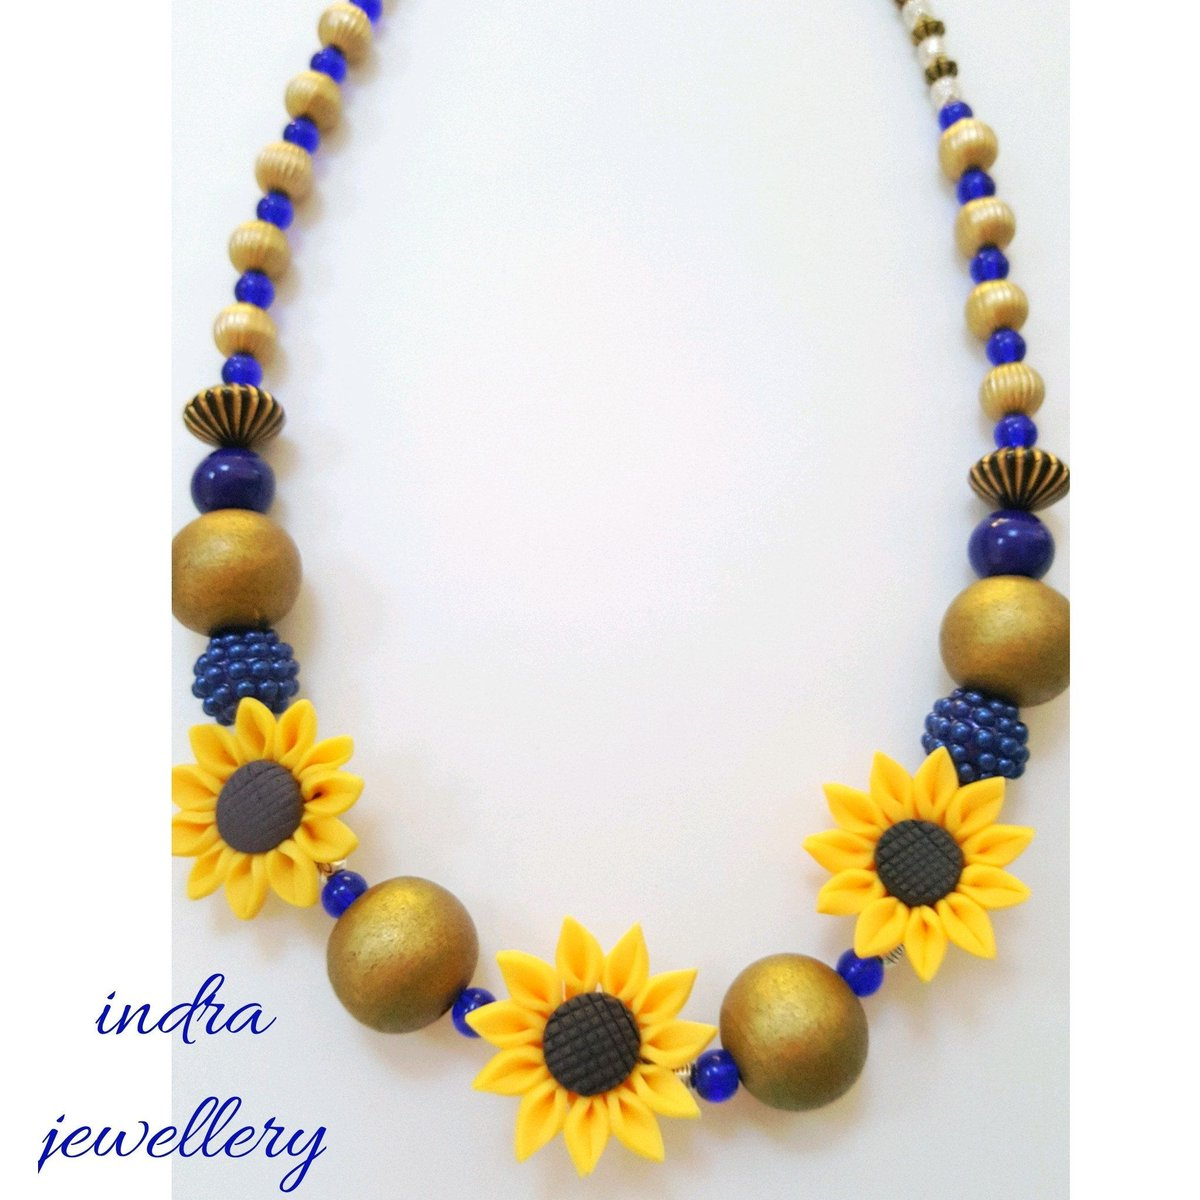 This striking #sunflower and colbat blue necklace is the perfect accessory for those summer days!  #handmadehour #ladiescoffeehour<br>http://pic.twitter.com/dWU7Tgb3Xf